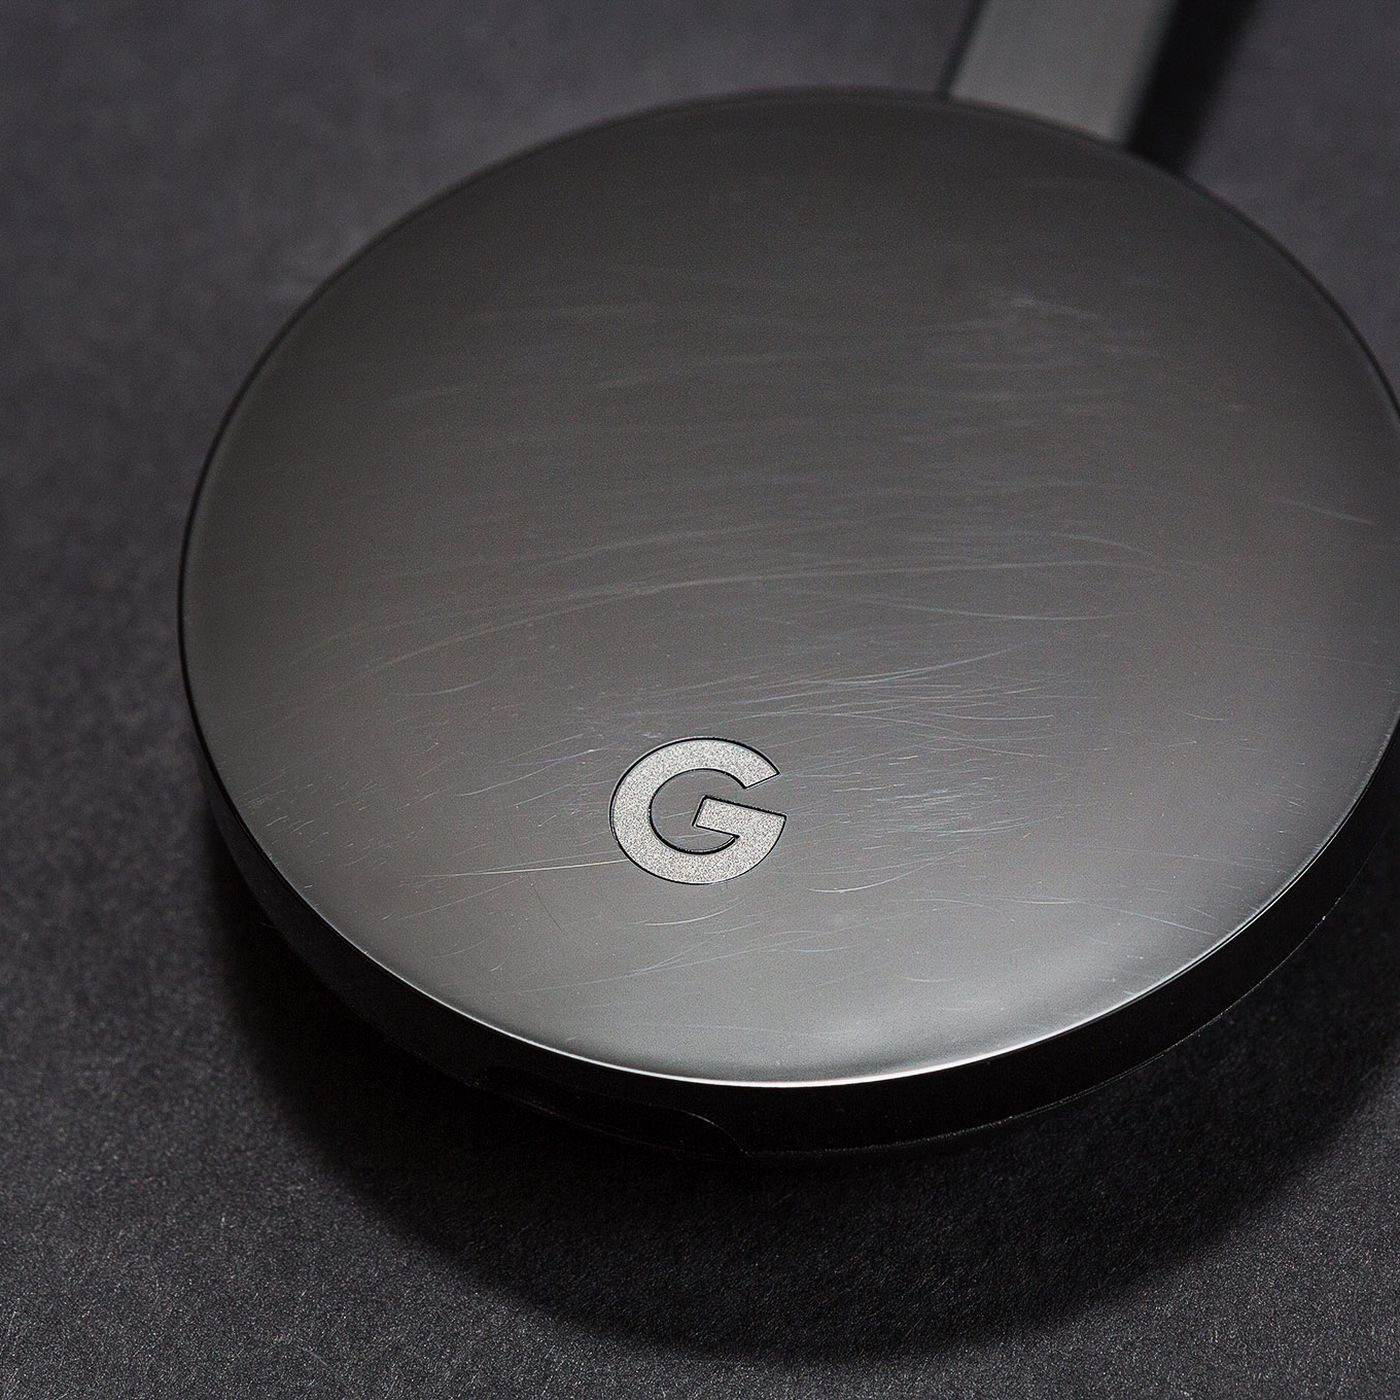 Streaming videos from your browser to Chromecast is about to